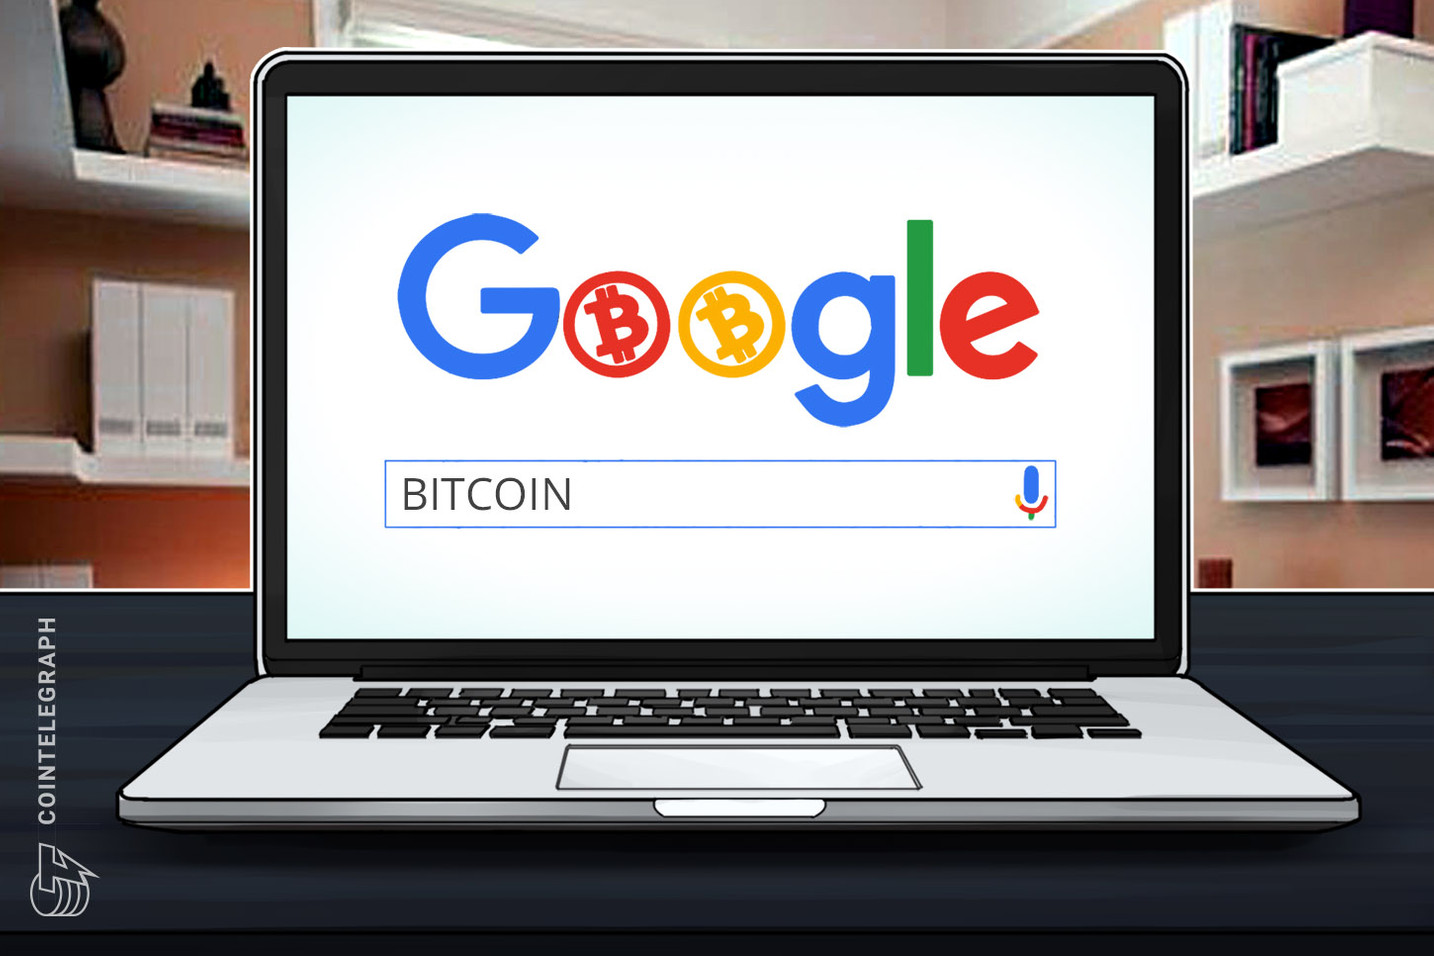 $10K Bitcoin Stronger Than Ever But No One Seems to Care: Google Trends